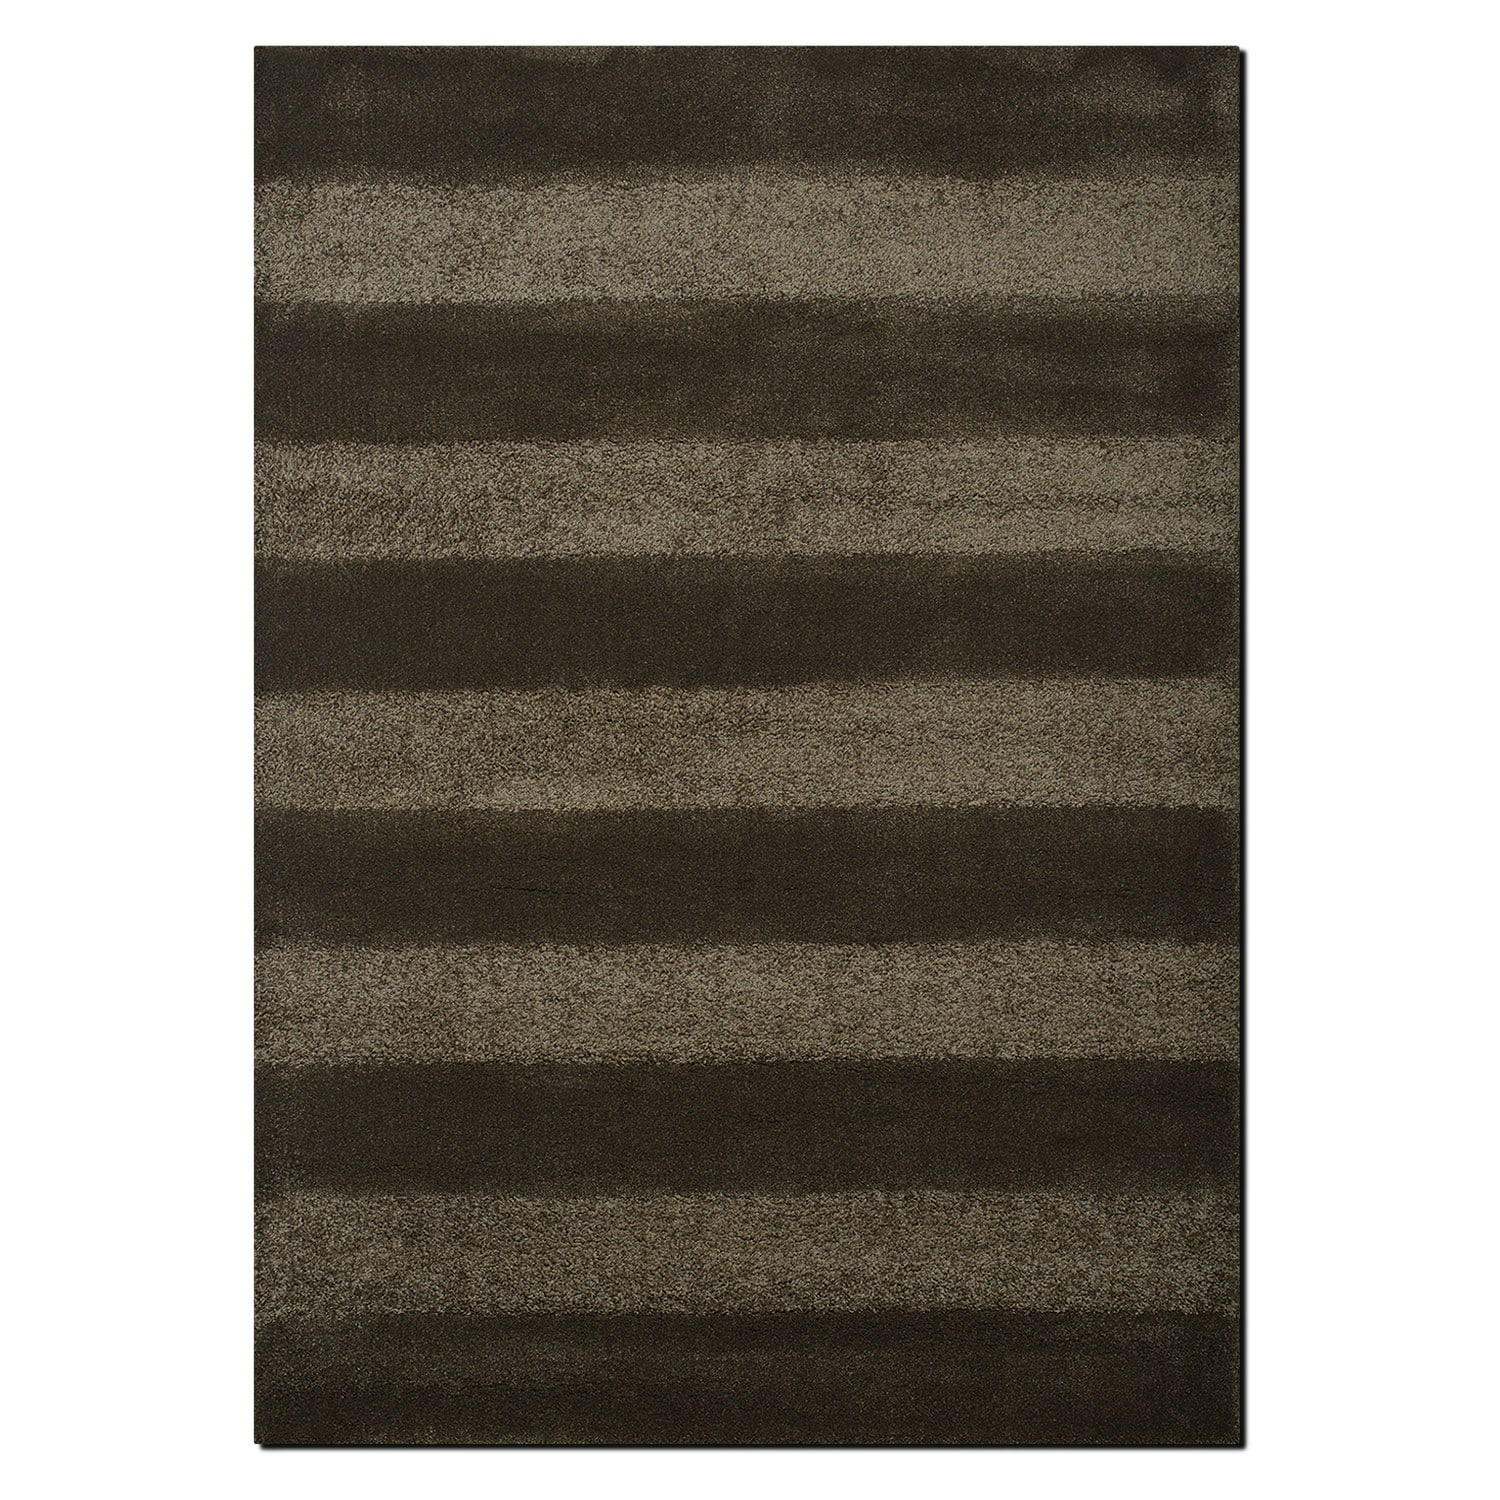 Rugs - Elements 8' x 10' Area Rug - Smoke